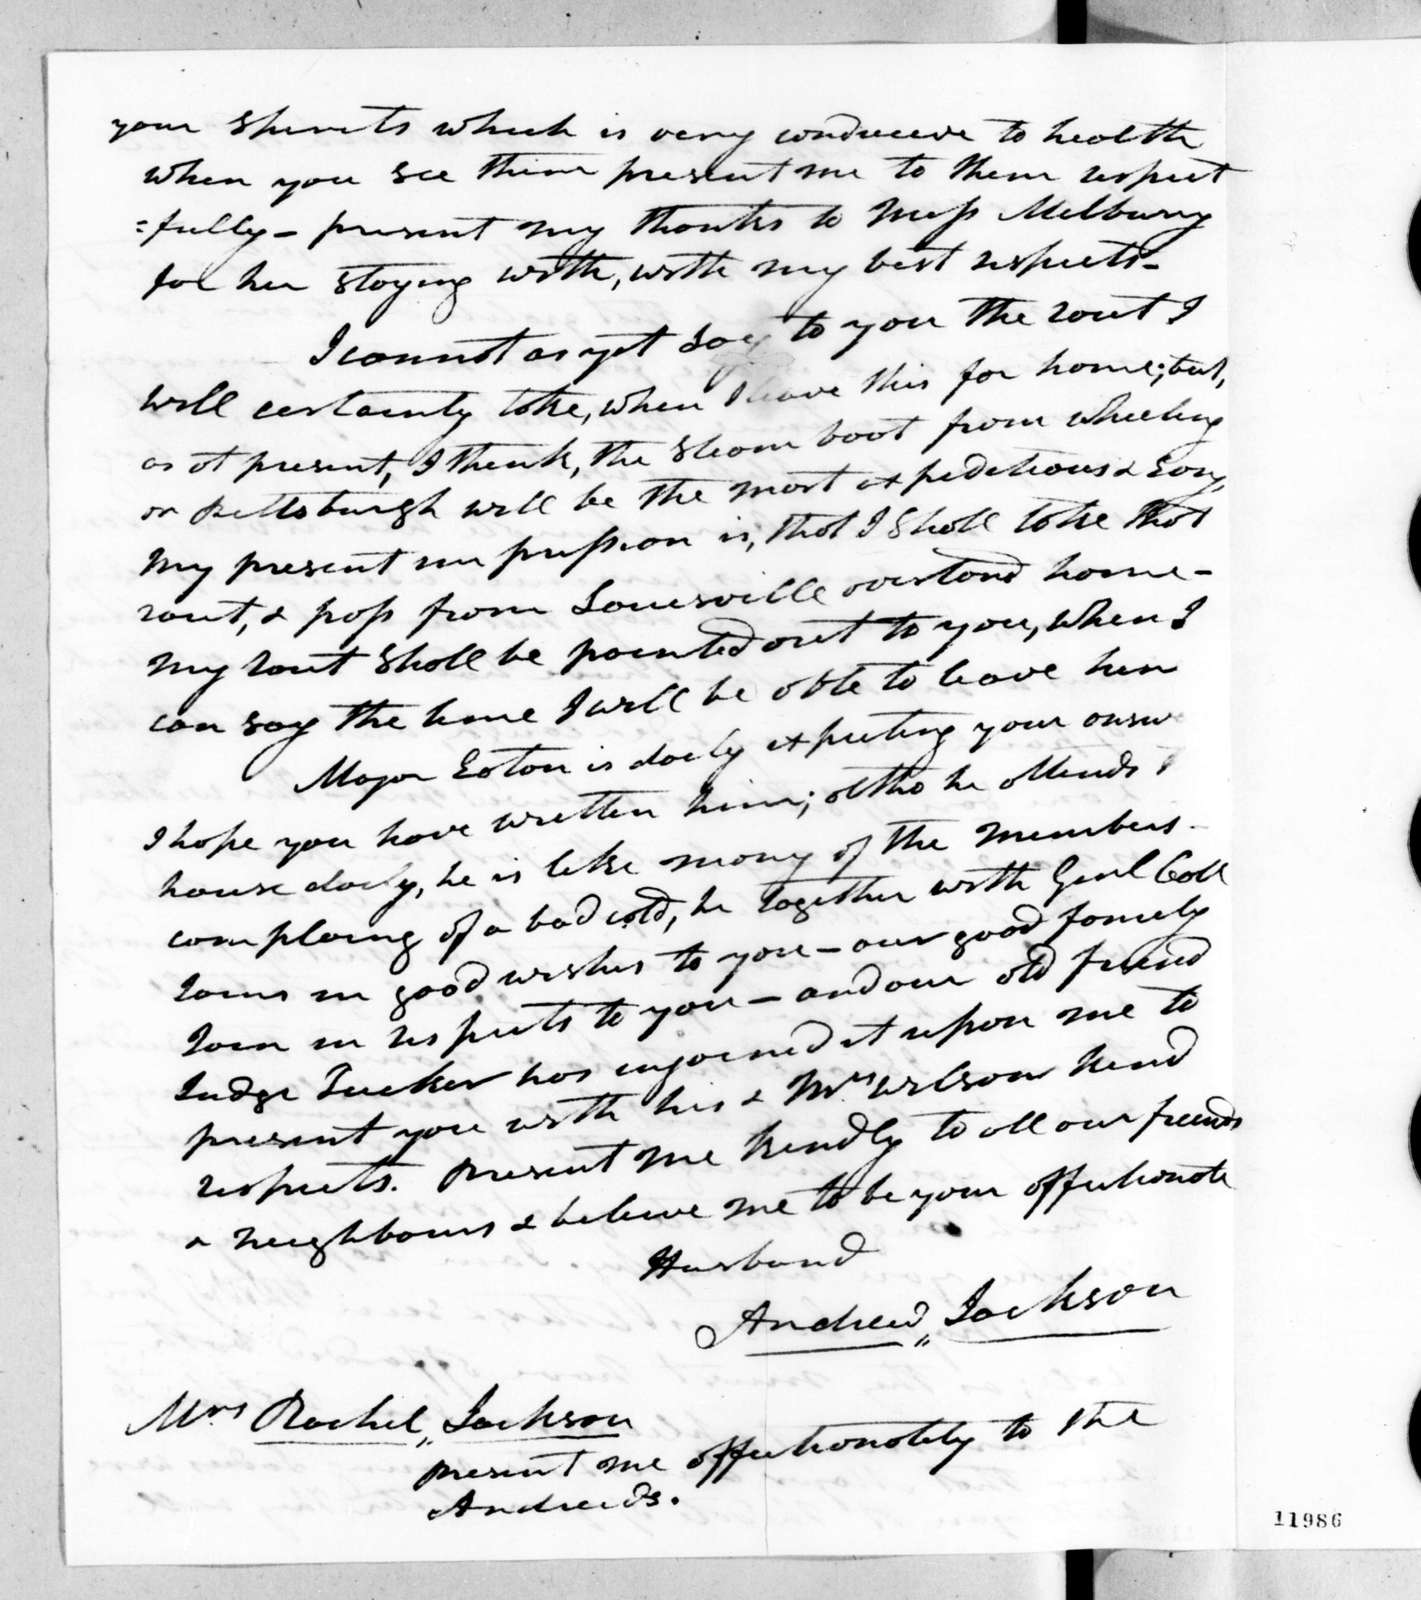 Andrew Jackson to Rachel Donelson Jackson, March 19, 1824